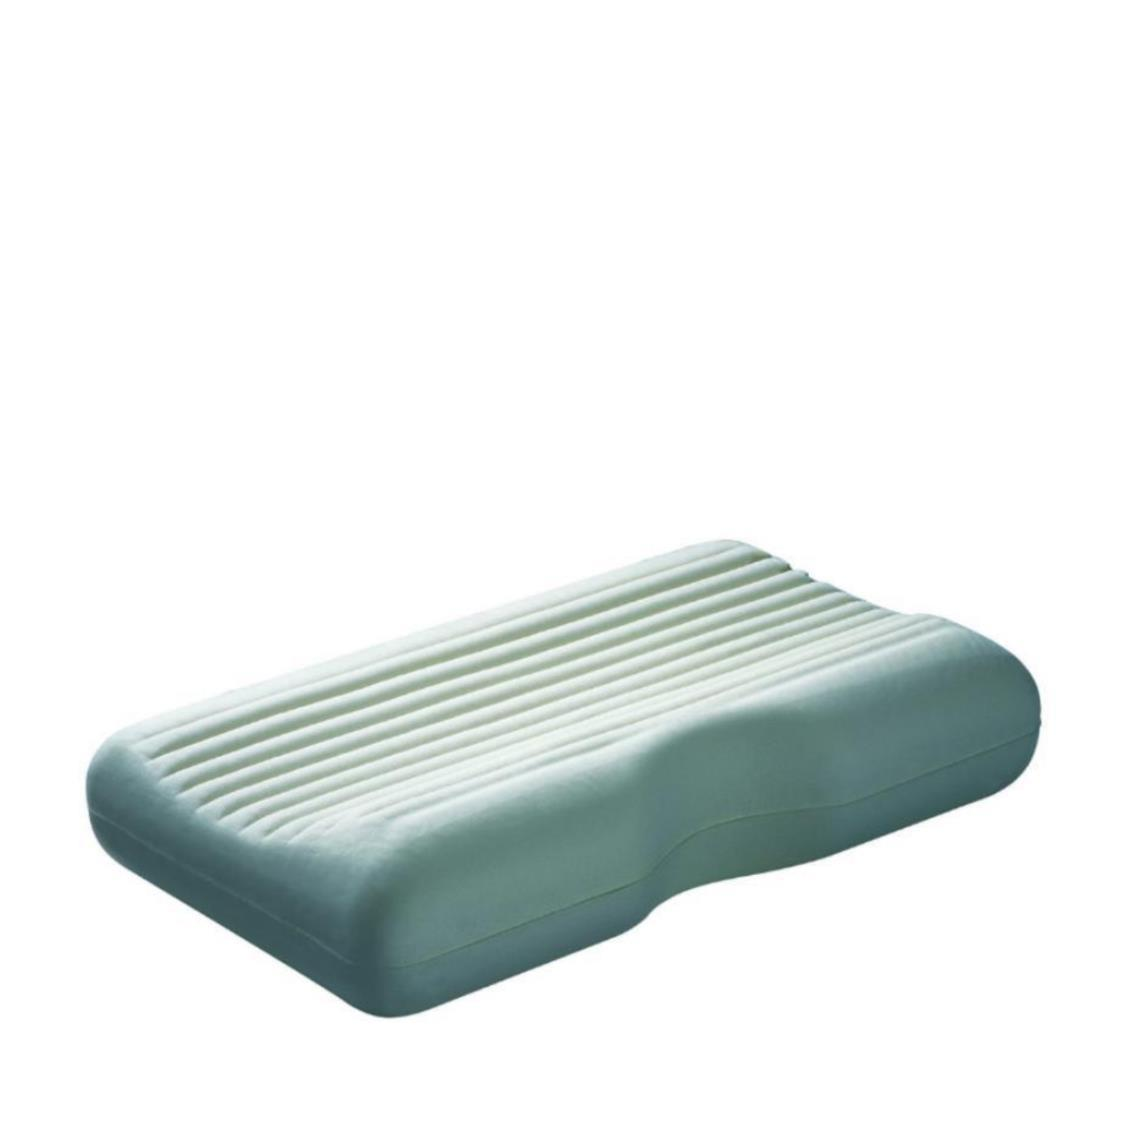 Dentons Therapeutic Pillow MediRest